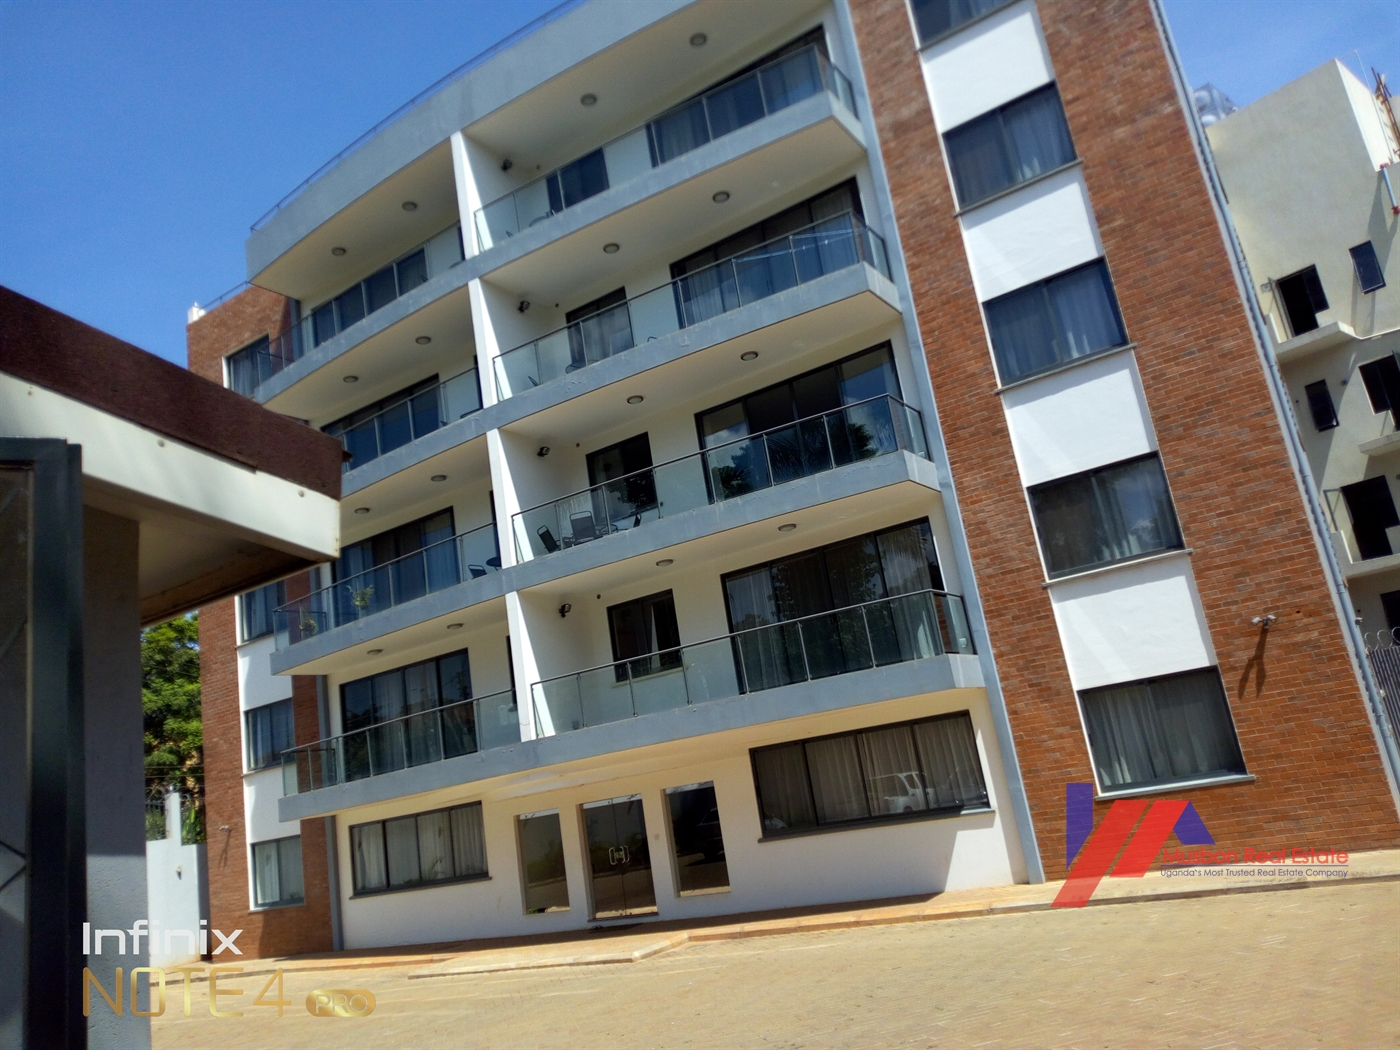 Commercial block for sale in Kololo Kampala